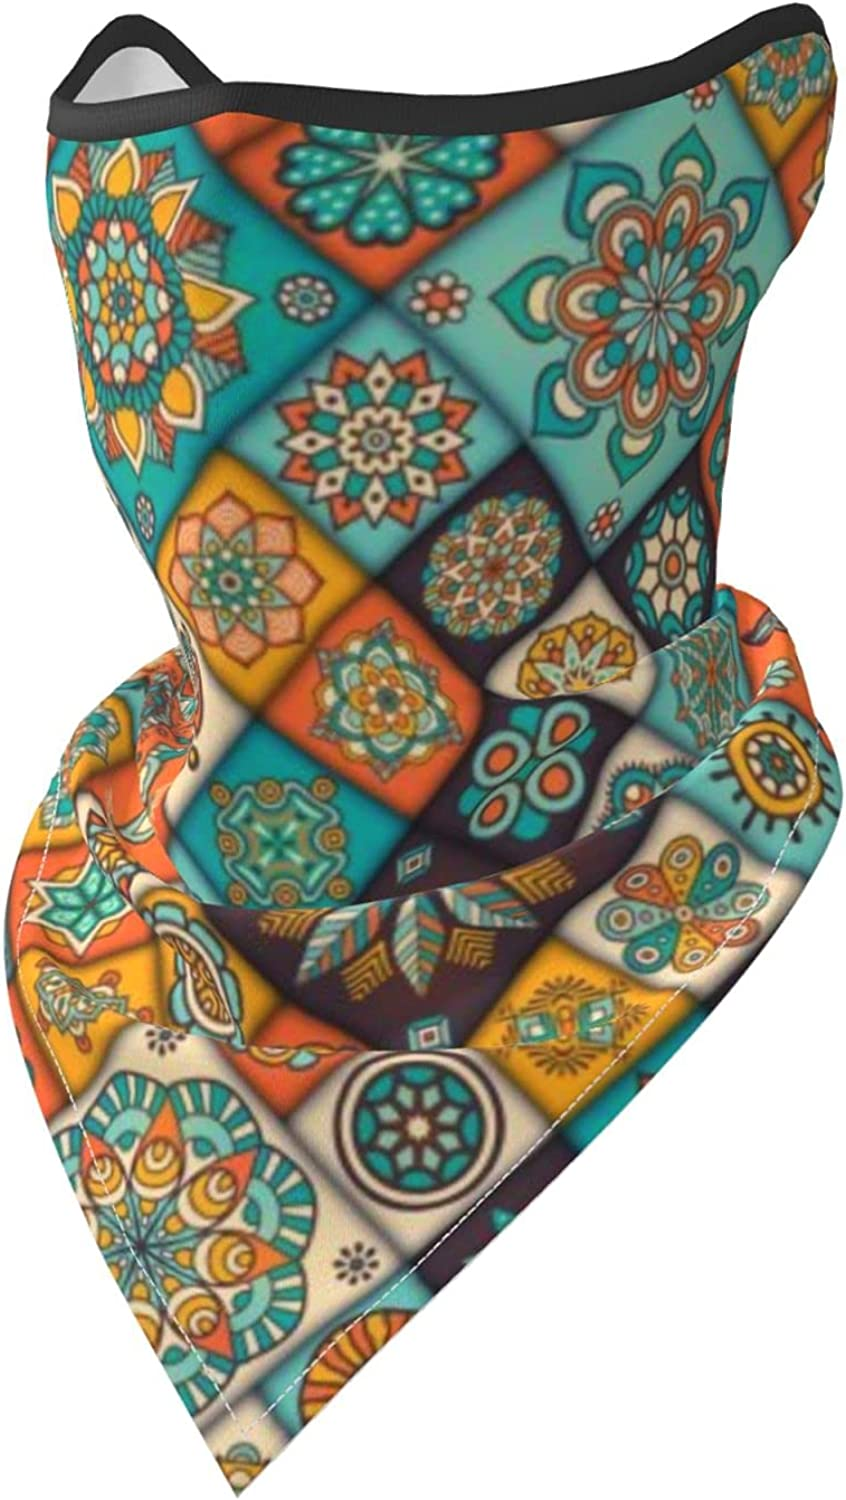 Bohemian Ethnic Floral Breathable Bandana Face Mask Neck Gaiter Windproof Sports Mask Scarf Headwear for Men Women Outdoor Hiking Cycling Running Motorcycling